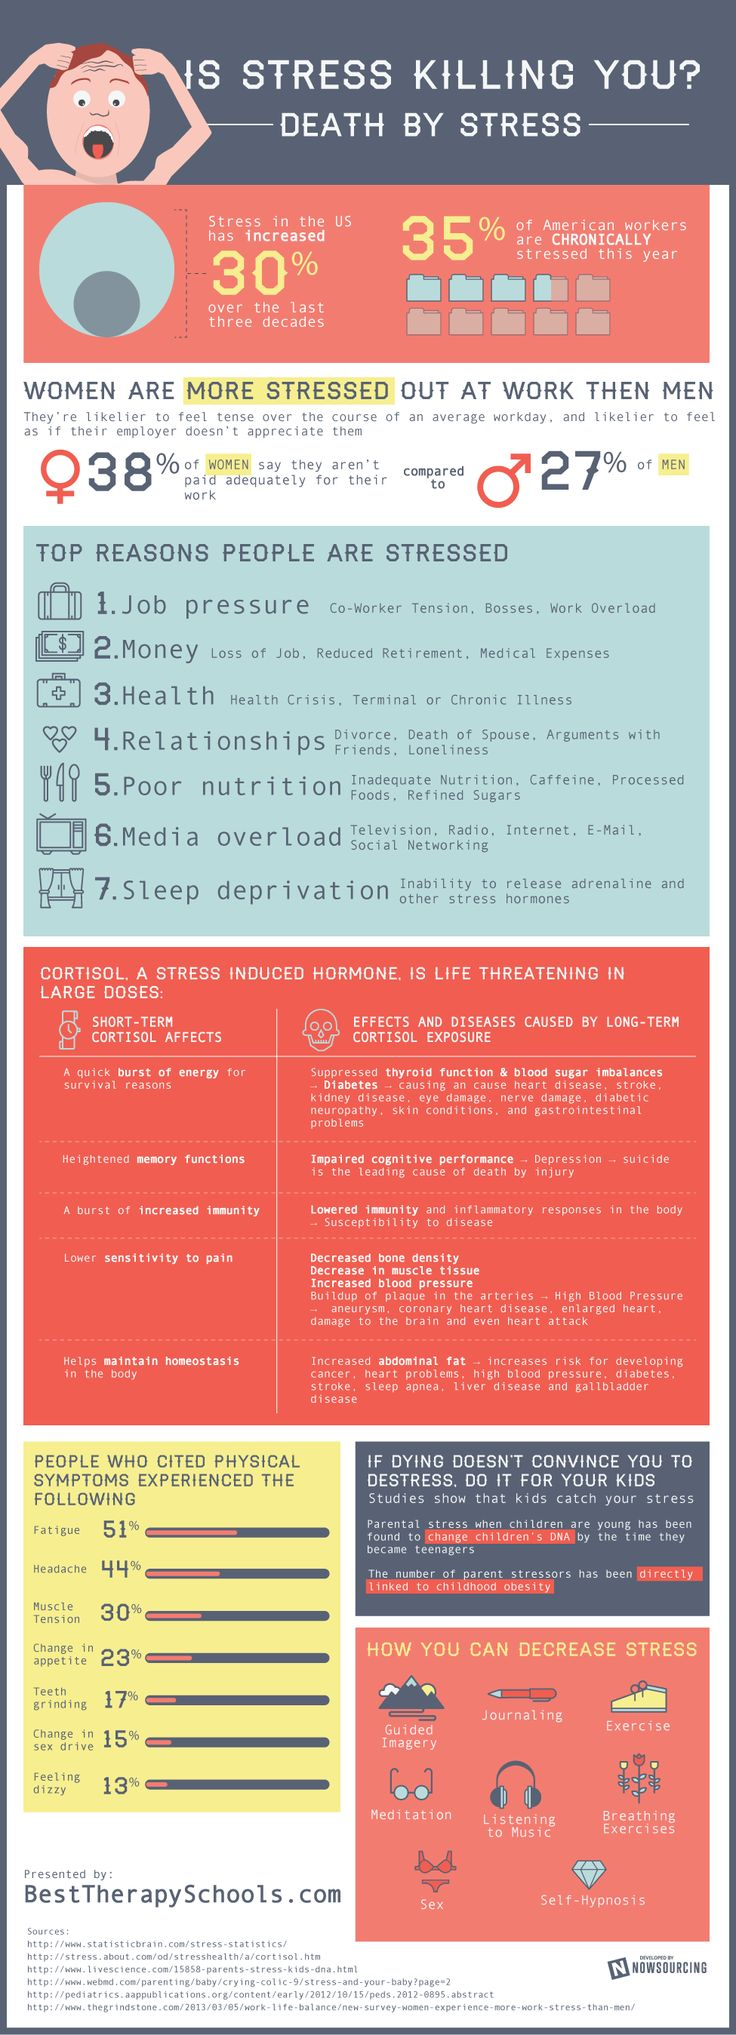 Is Stress Killing You? - Job pressure is the top cause of stress according to this infographic